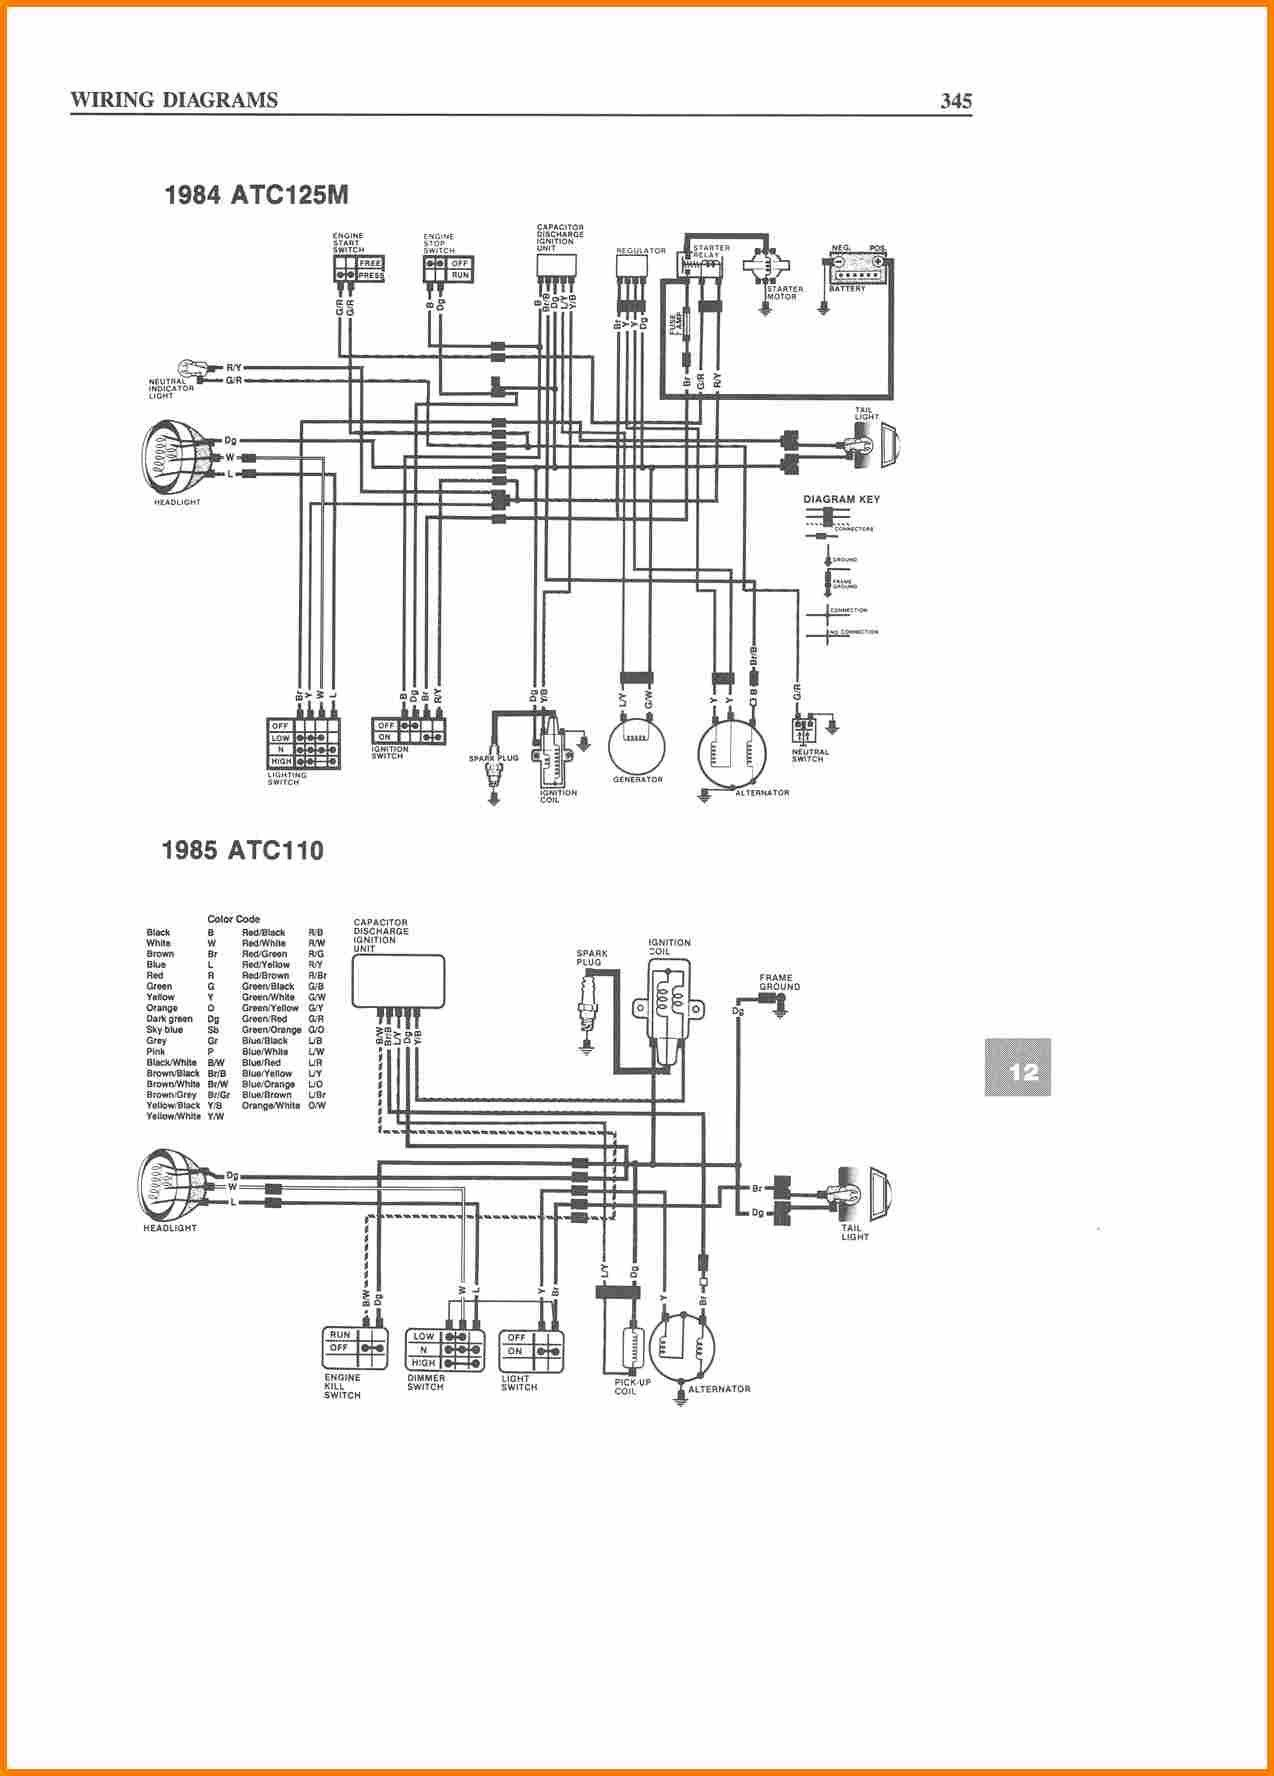 50cc scooter wiring diagram wiring diagrams50cc wire diagram wiring diagram 49cc gy6 scooter wiring diagram 50cc scooter wiring diagram